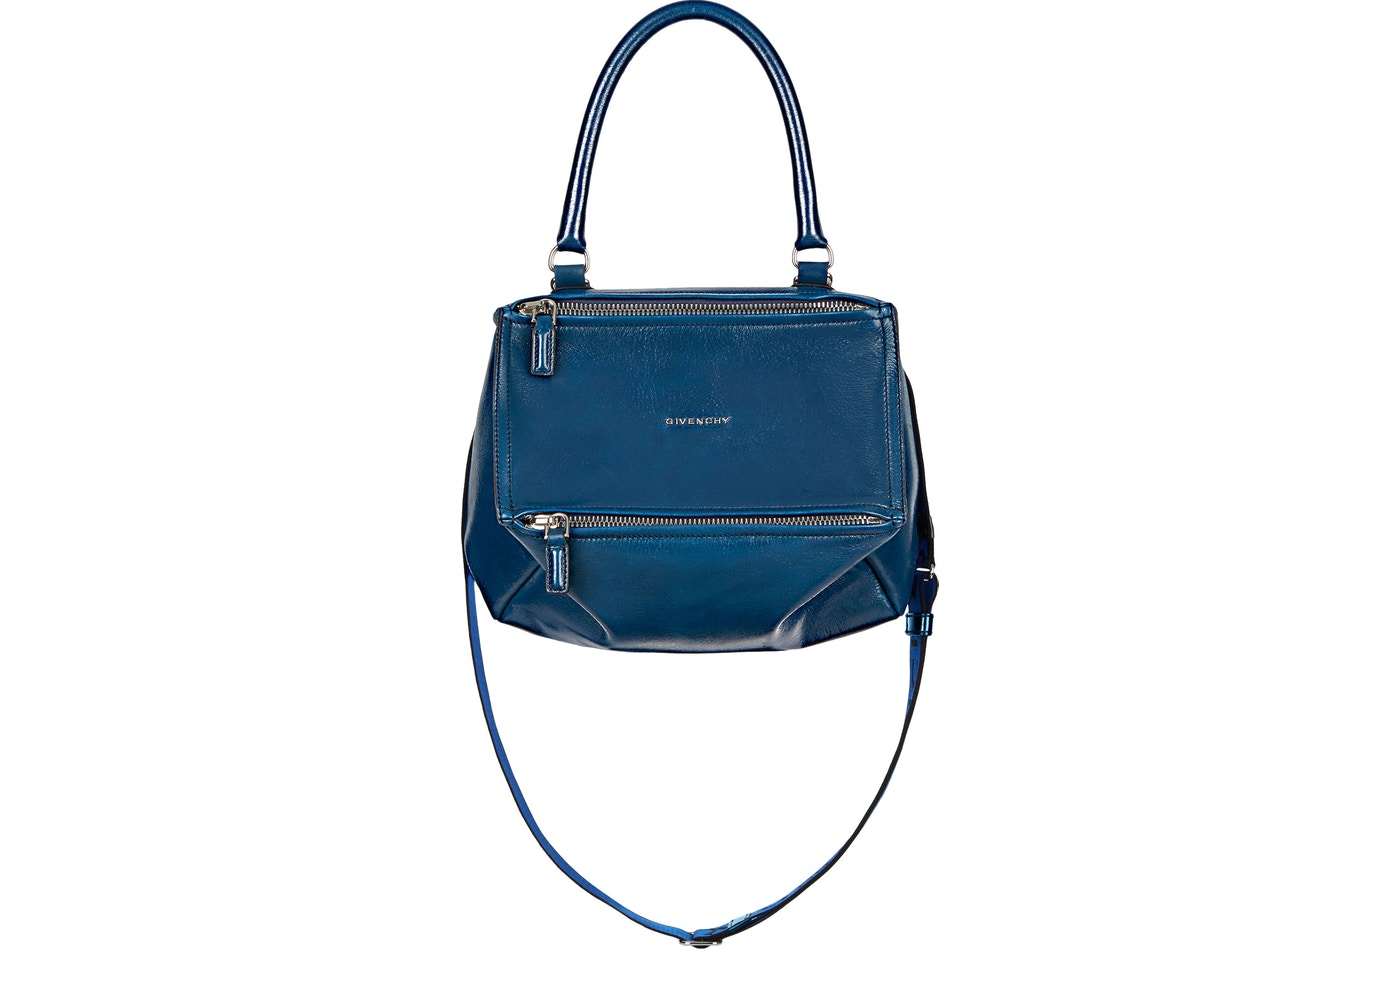 6c17c735896 Givenchy Pandora Bag Patent Leather 4G Strap Small Petrol Blue